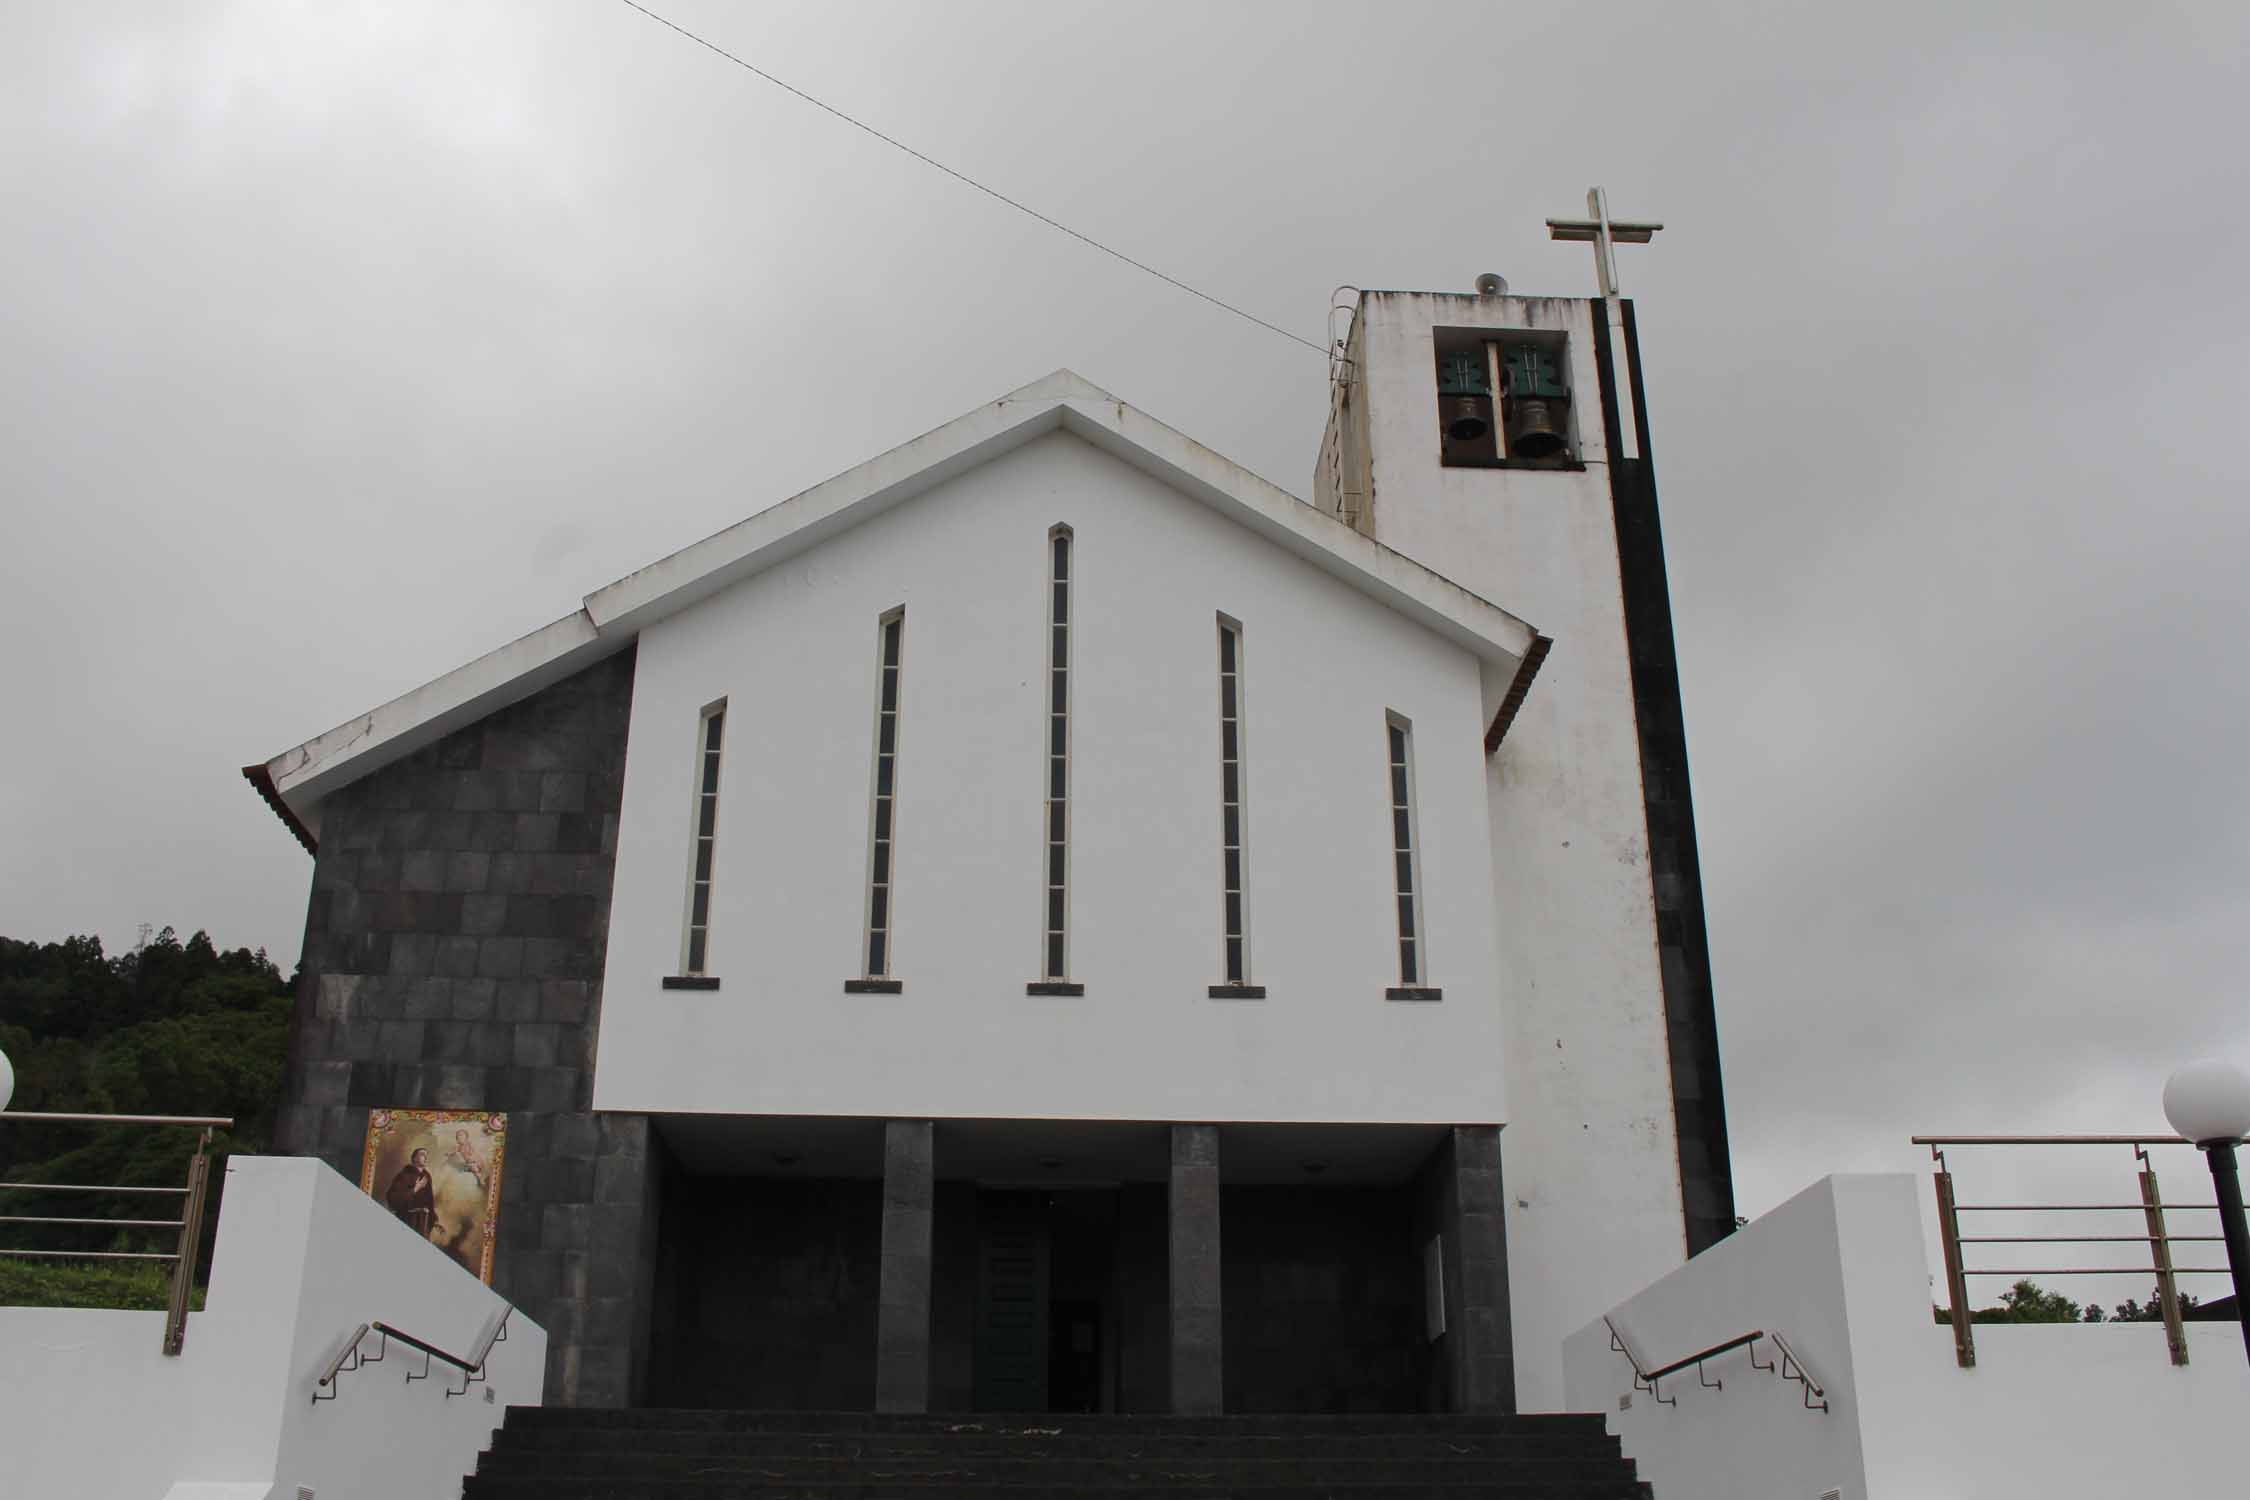 Azores, Faial Island, Espalhafatos, church